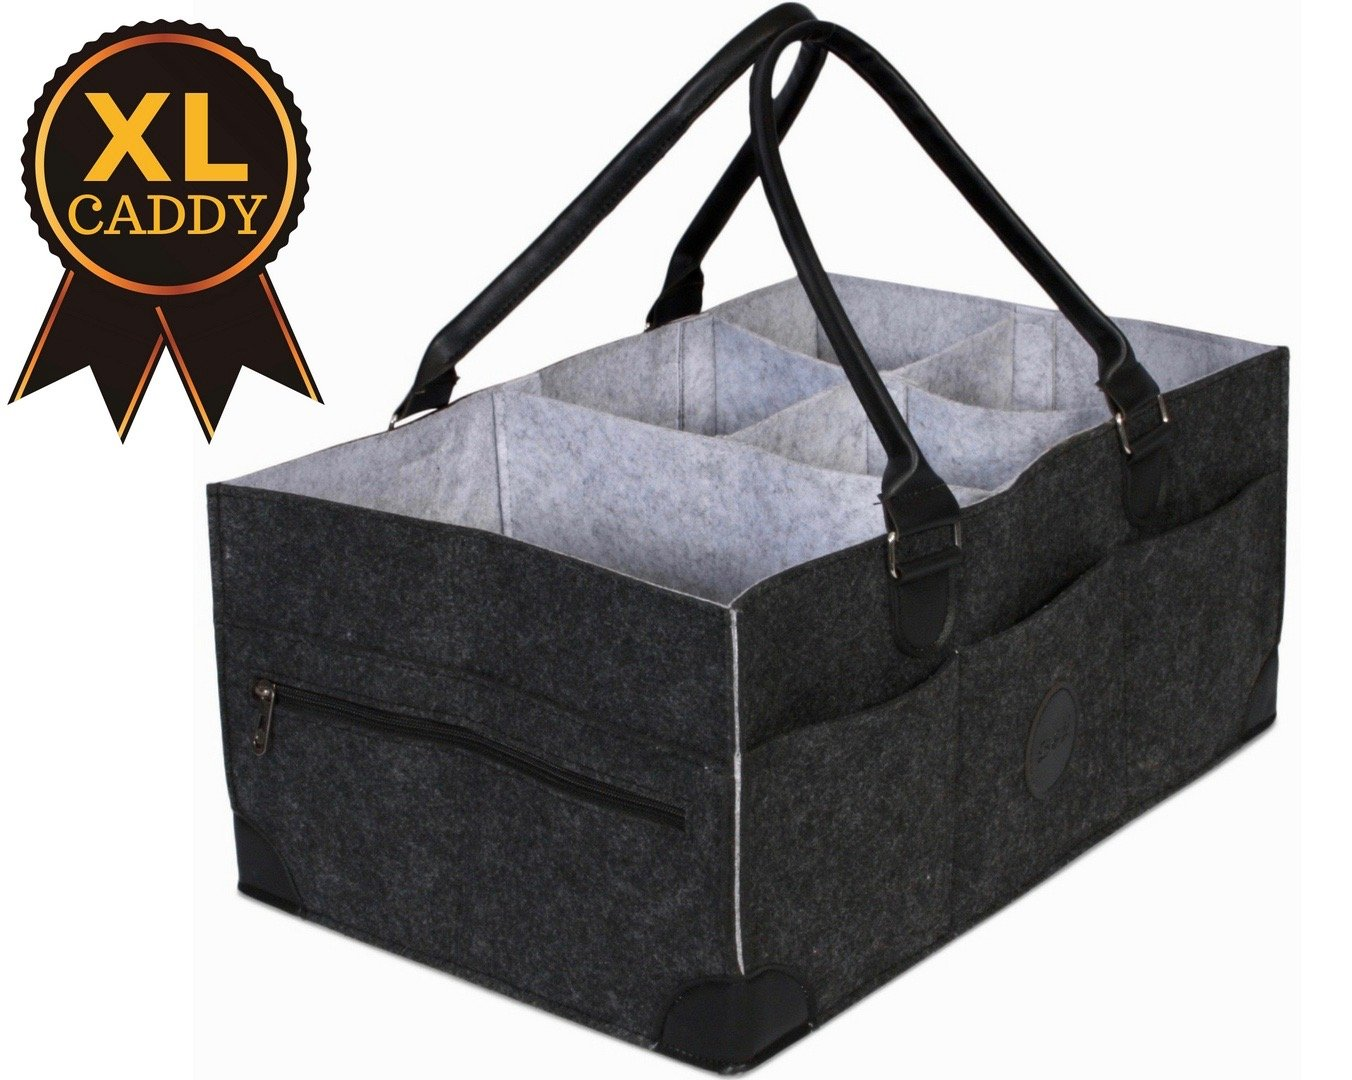 B & L Babies Extra Large Baby Diaper Caddy | Grey | B & L Products